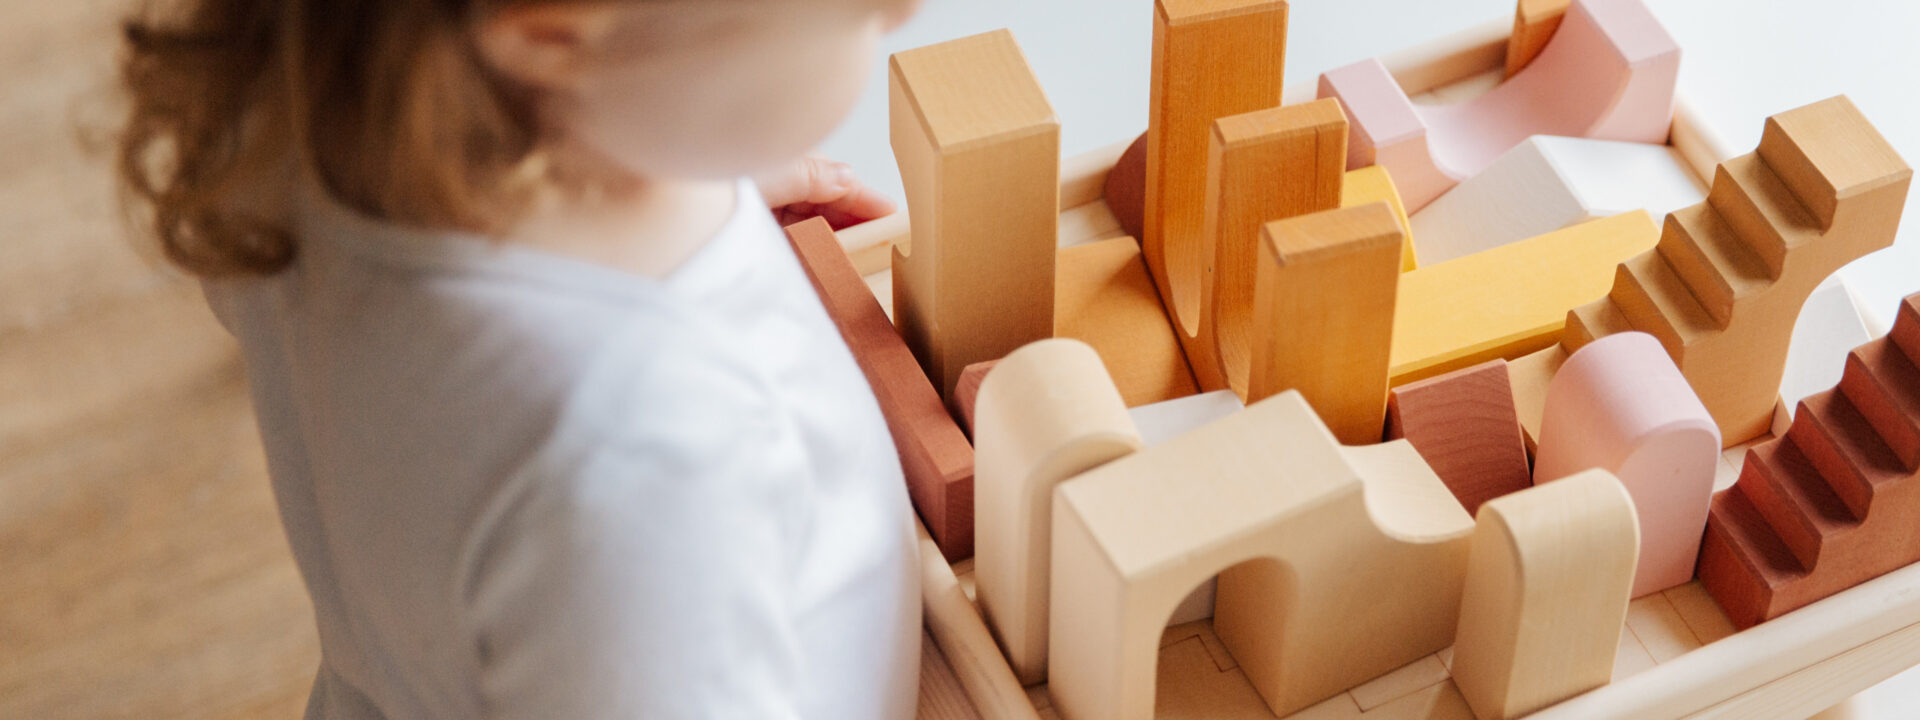 Safe and Secure Decorating Solutions for Personalizing Wooden Toys Used by Children